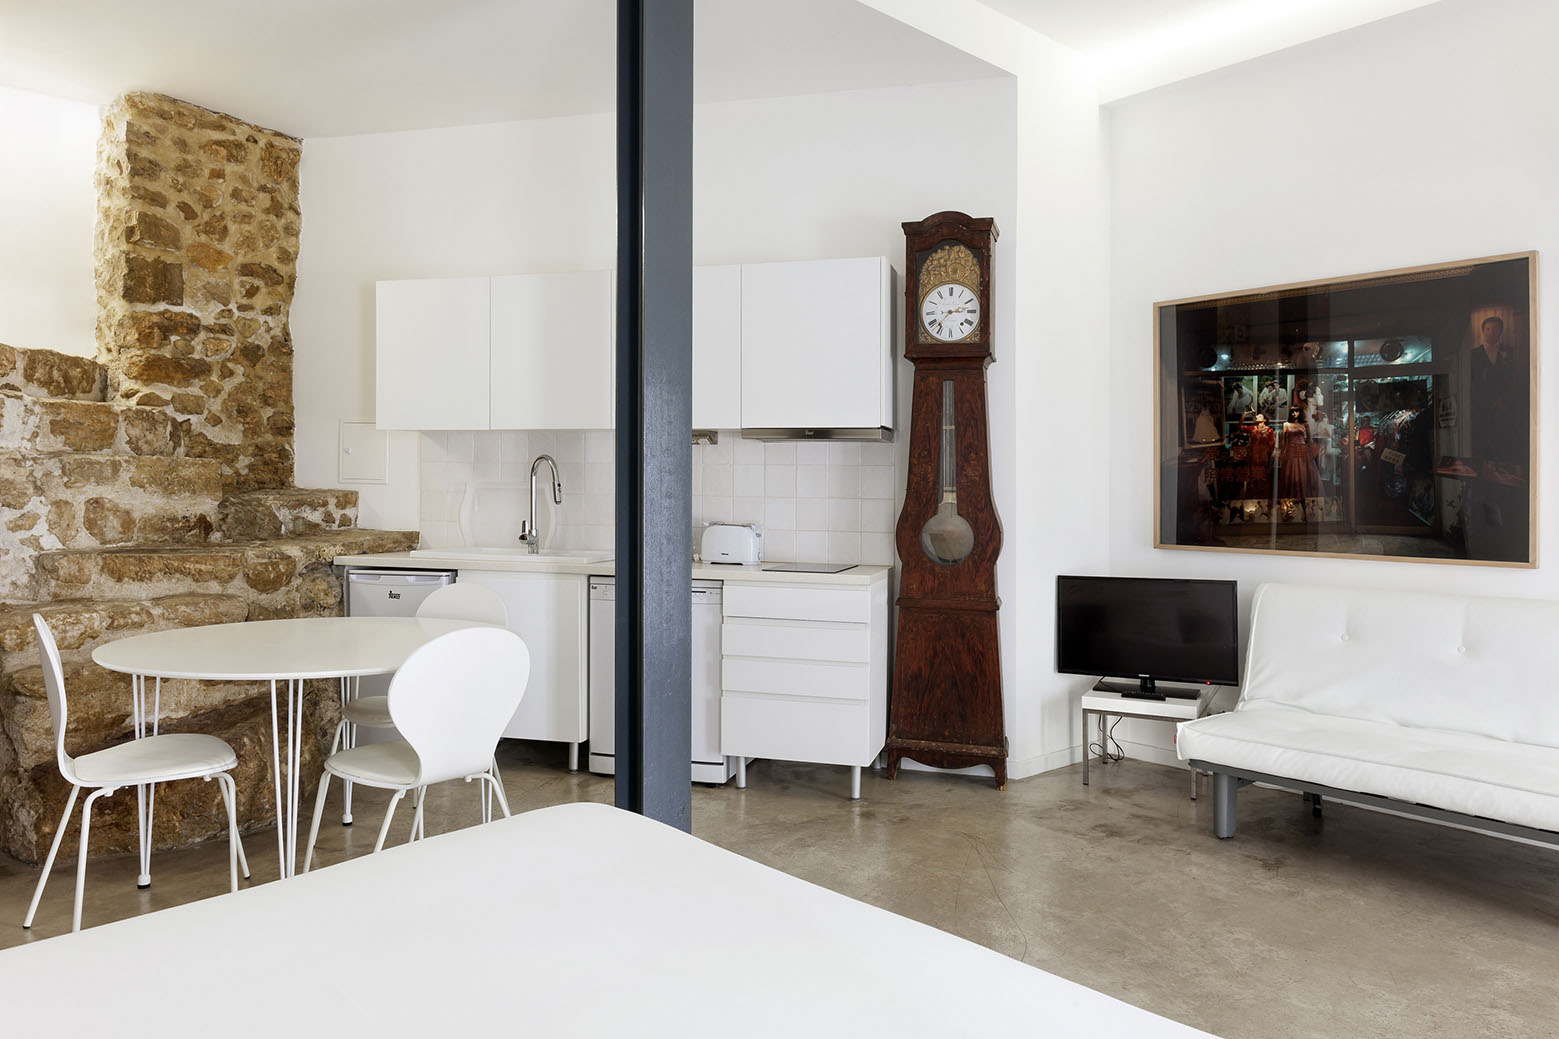 Studio Apartment with Stone Wall